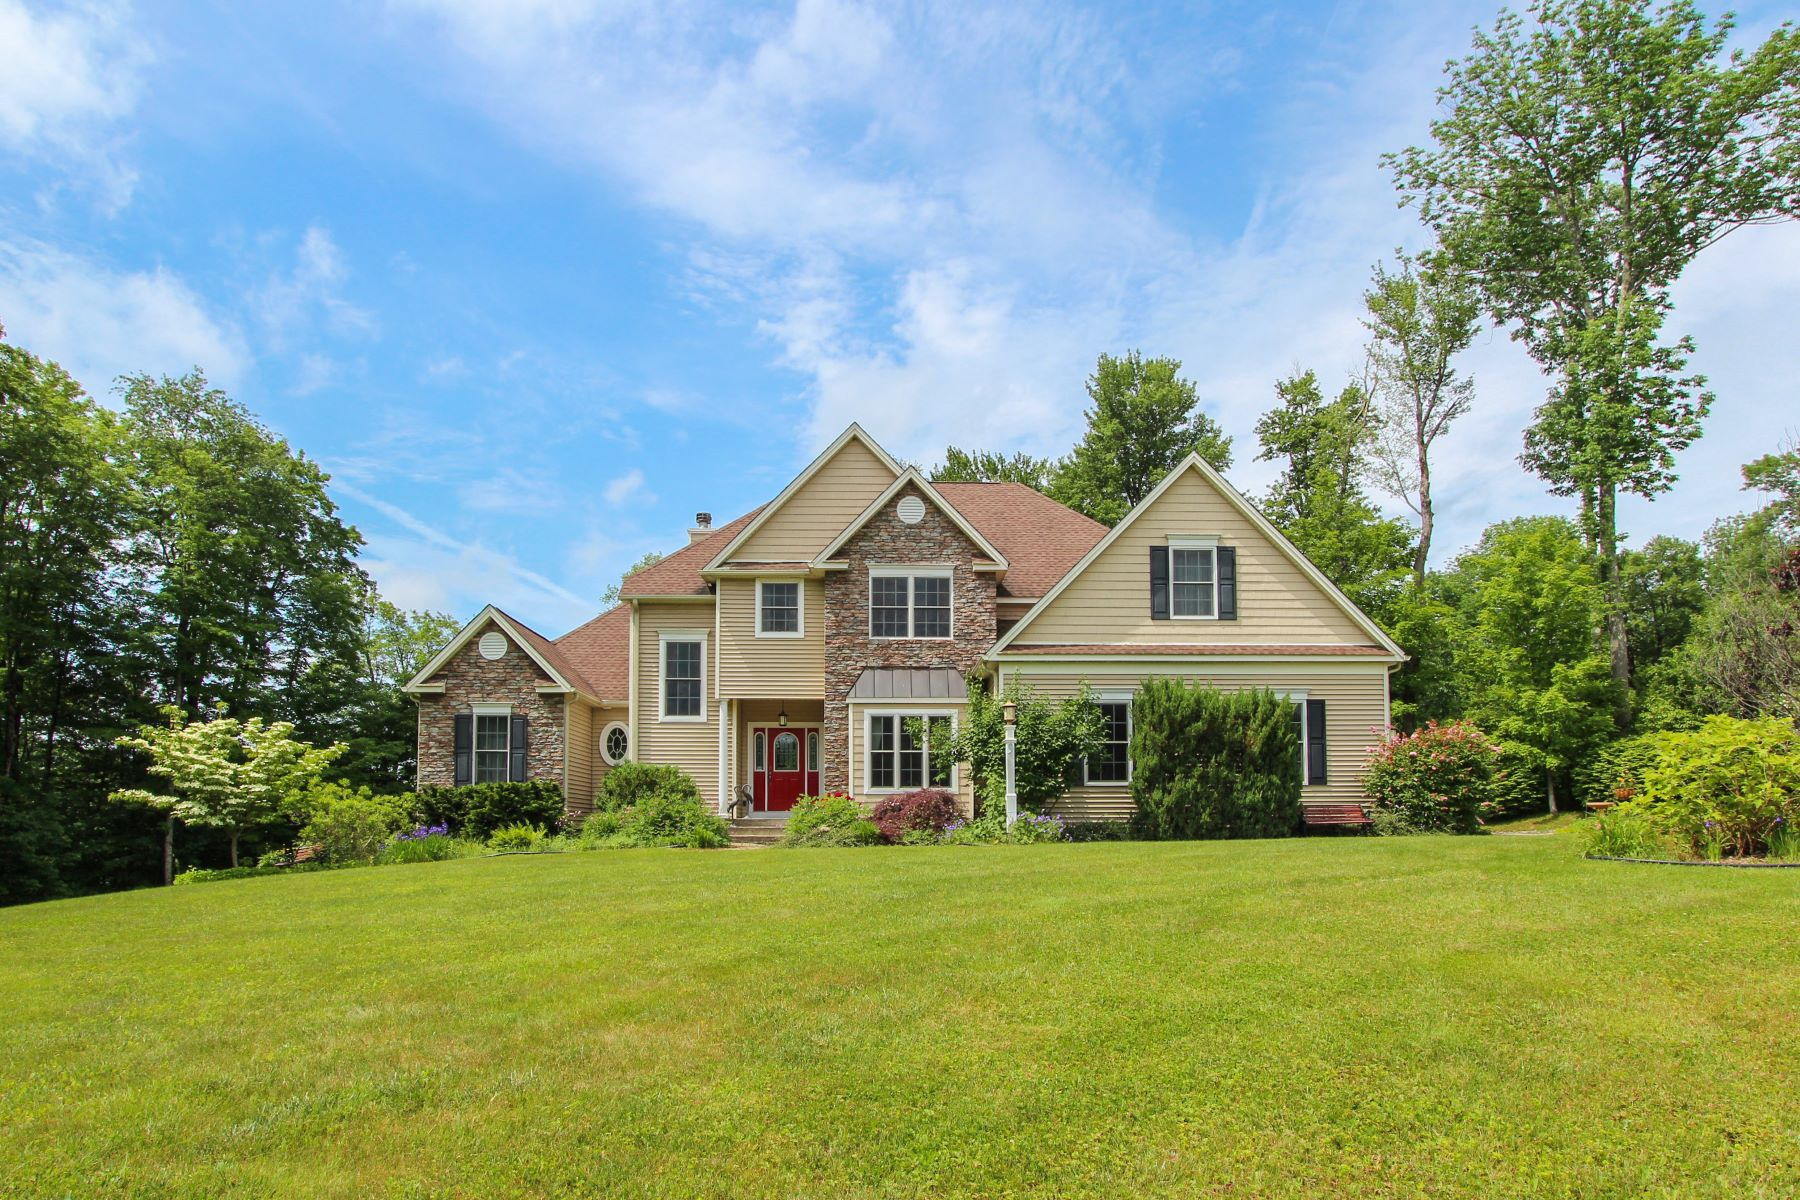 Maison unifamiliale pour l Vente à Timberlake Colonial with Seasonal Views! 9 Falcon Ridge Rd Torrington, Connecticut 06790 États-Unis